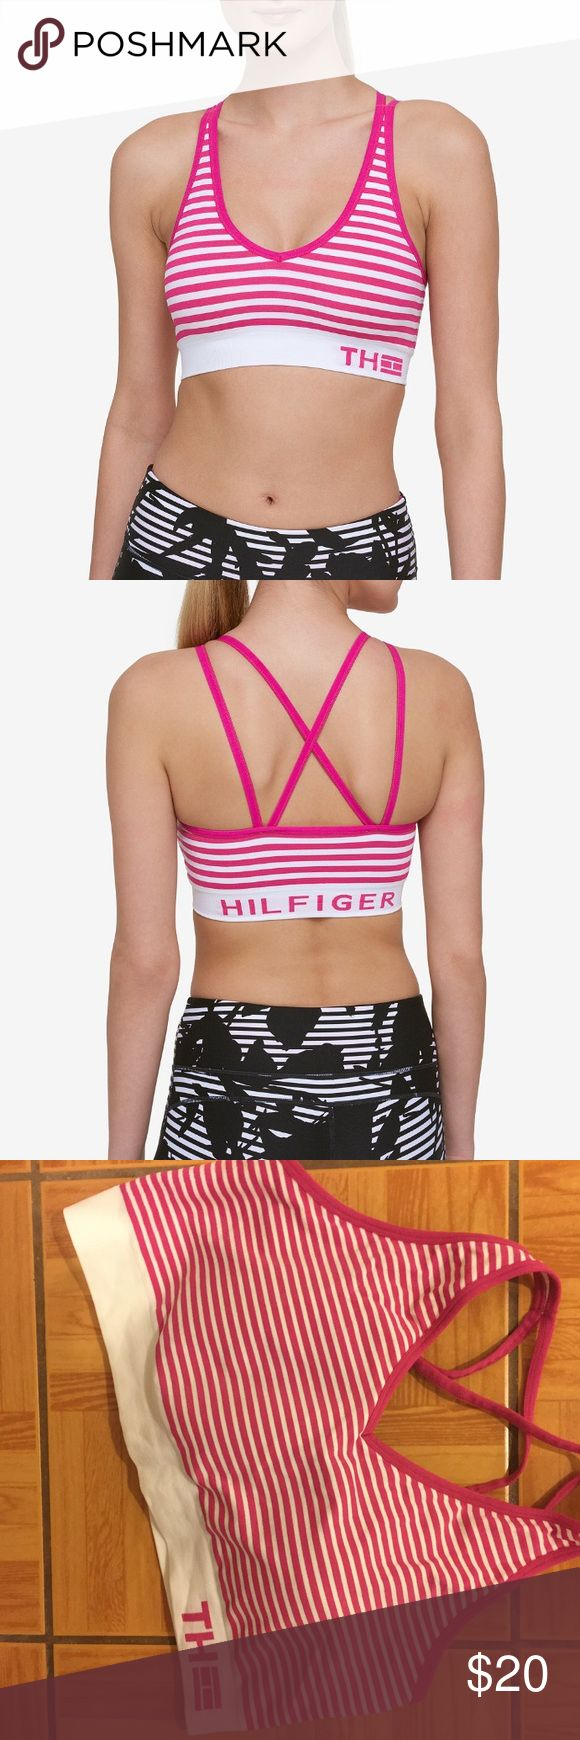 """NWOT Tommy Hilfiger Sport Striped Sports Bra •V-neckline, pull over style •""""TH"""" logo at front; """"HILFIGER"""" printed on back •strappy detailing at back •Polyester/ Nylon/ spandex  Tried on once! Too small for me.   🌻NO TRADES 🌻OFFERS WELCOMED! 🌻BUNDLE TO SAVE  🌻FEEL FREE TO ASK ANY QUESTIONS Tommy Hilfiger Intimates & Sleepwear Bras"""